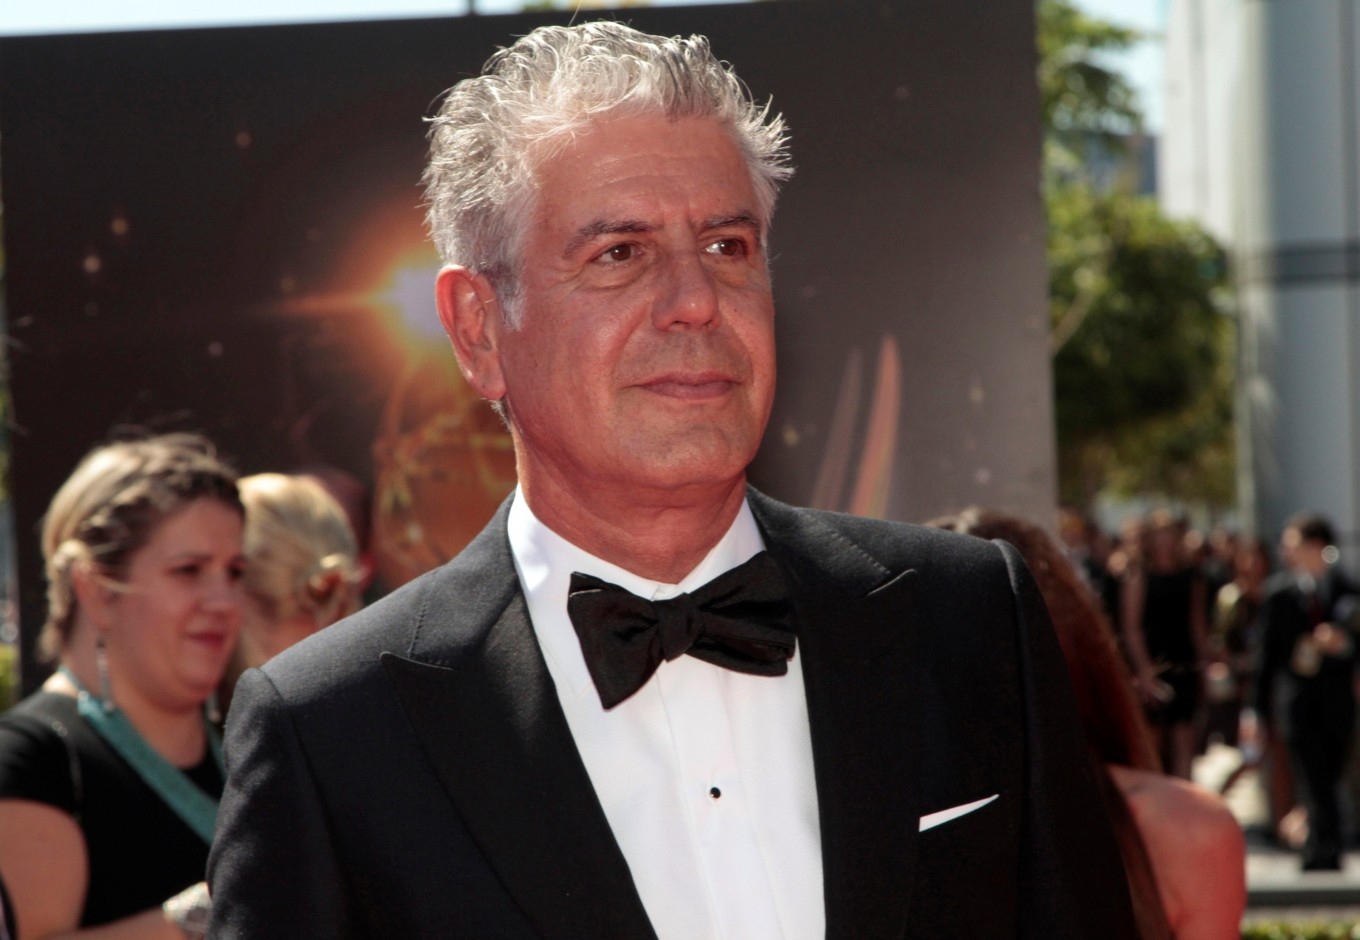 Anthony Bourdain's new travel book to be released in October